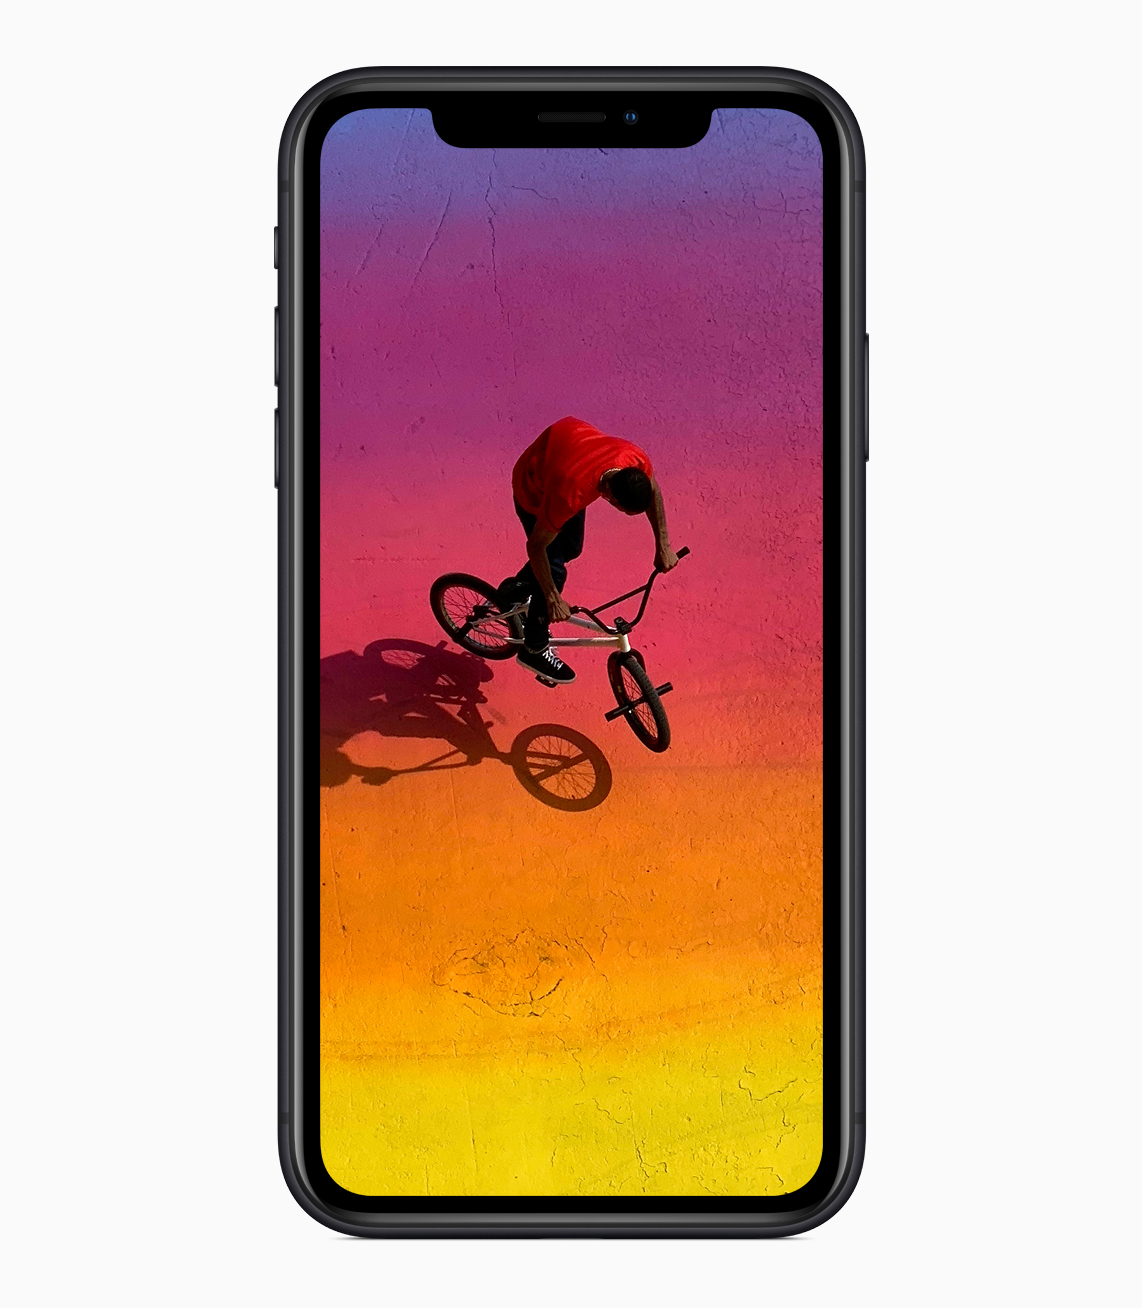 https://www.apple.com/newsroom/images/product/iphone/standard/iPhone_XR_lcd-display_09122018_inline.jpg.large_2x.jpg